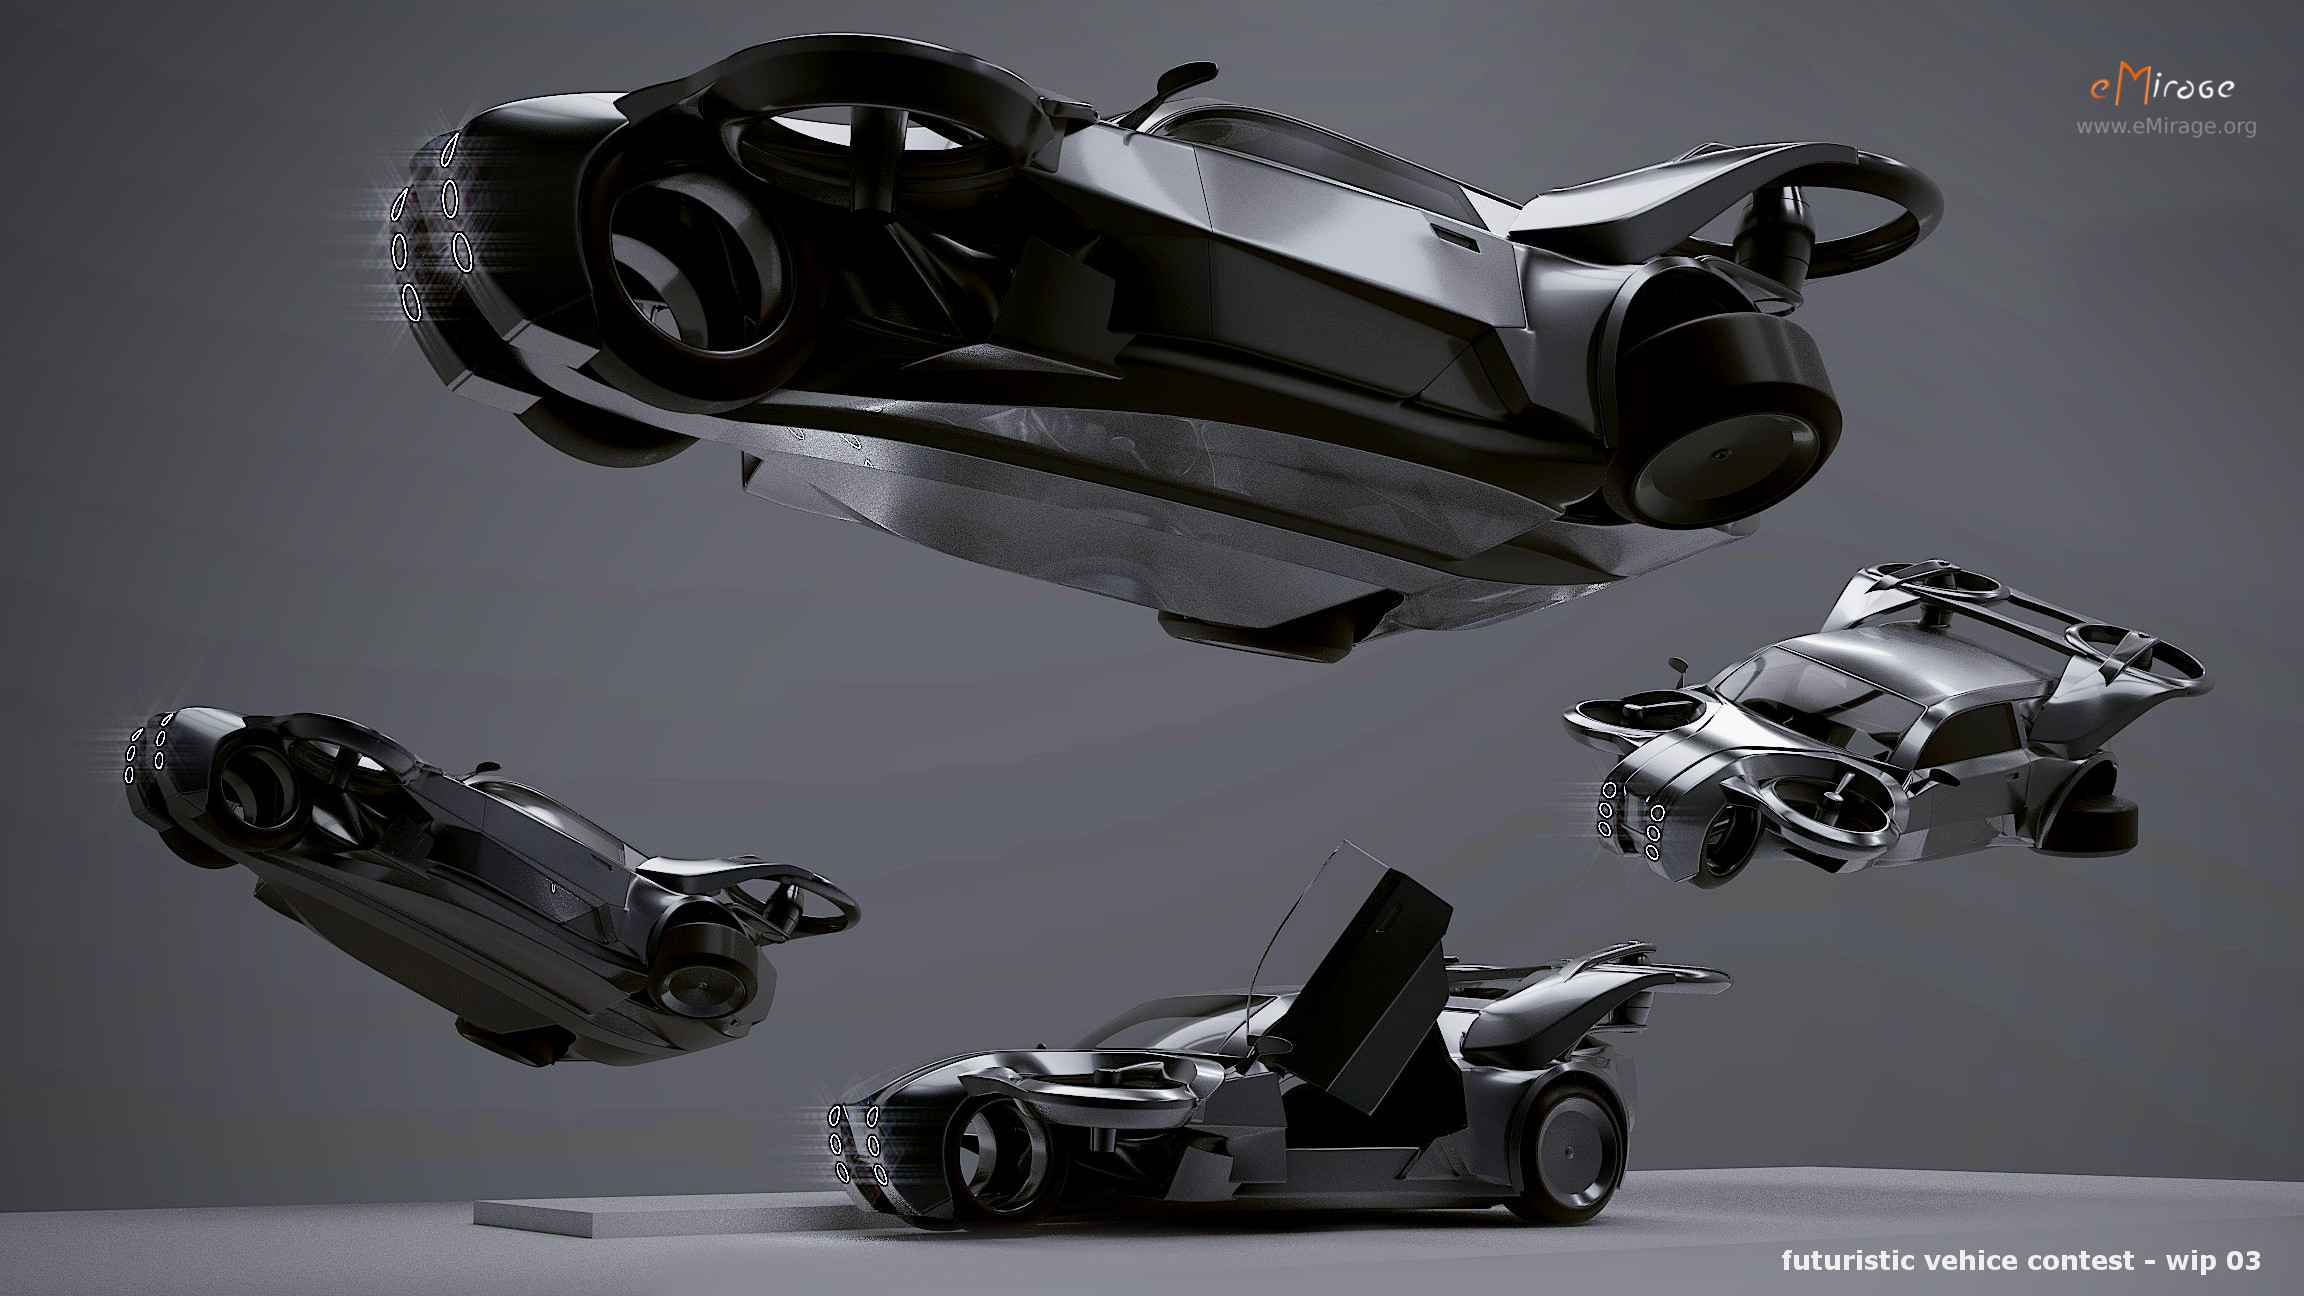 futuristic_vehicle_wip03